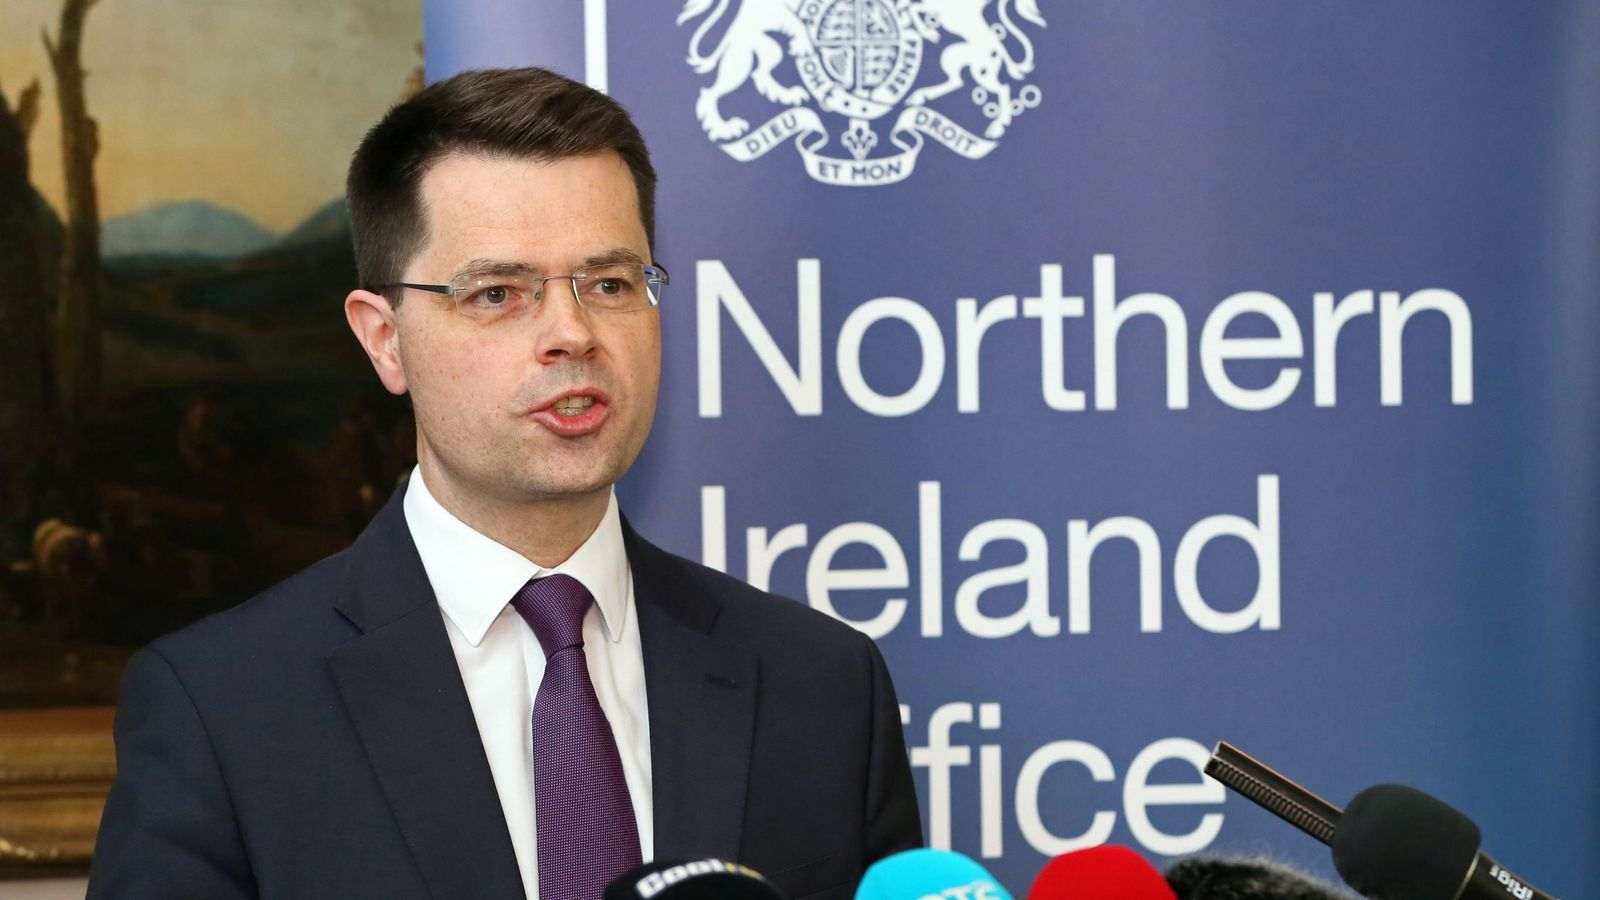 James Brokenshire calls for fresh Northern Ireland Assembly elections